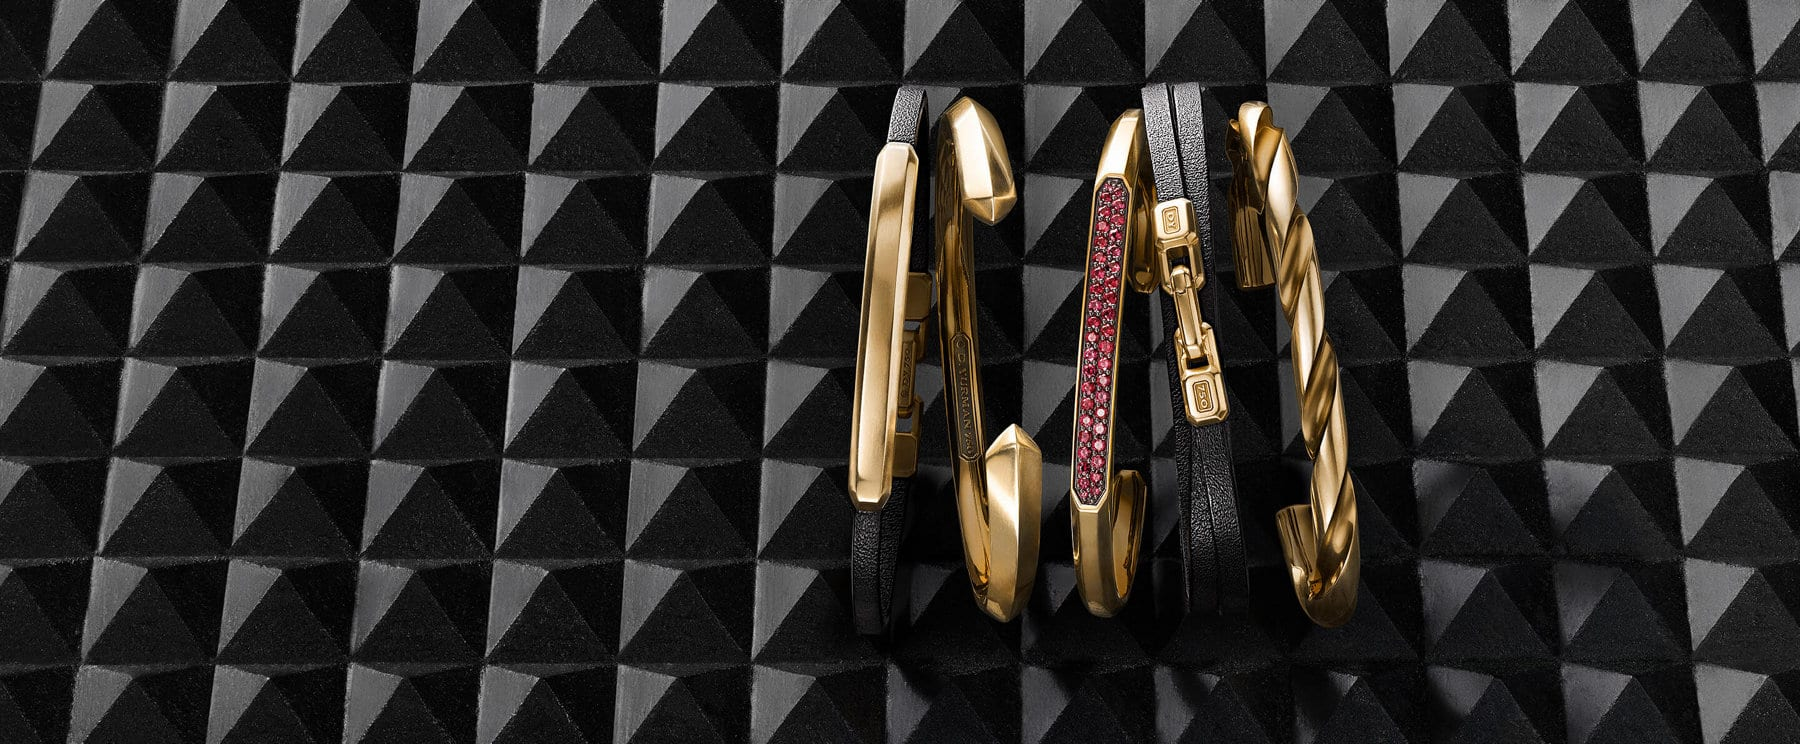 A color photograph shows an overhead shot of five David Yurman men's bracelets in a horizontal stack atop a charcoal-hued stone surface with pyramid-shaped protrusions. The bracelets are crafted from 18K gold. From left is a Streamline bracelet in black leather, a Roman cuff bracelet, a Streamline cuff bracelet with pavé rubies, a Streamline wrap bracelet in black leather and a Sculpted Cable cuff bracelet.